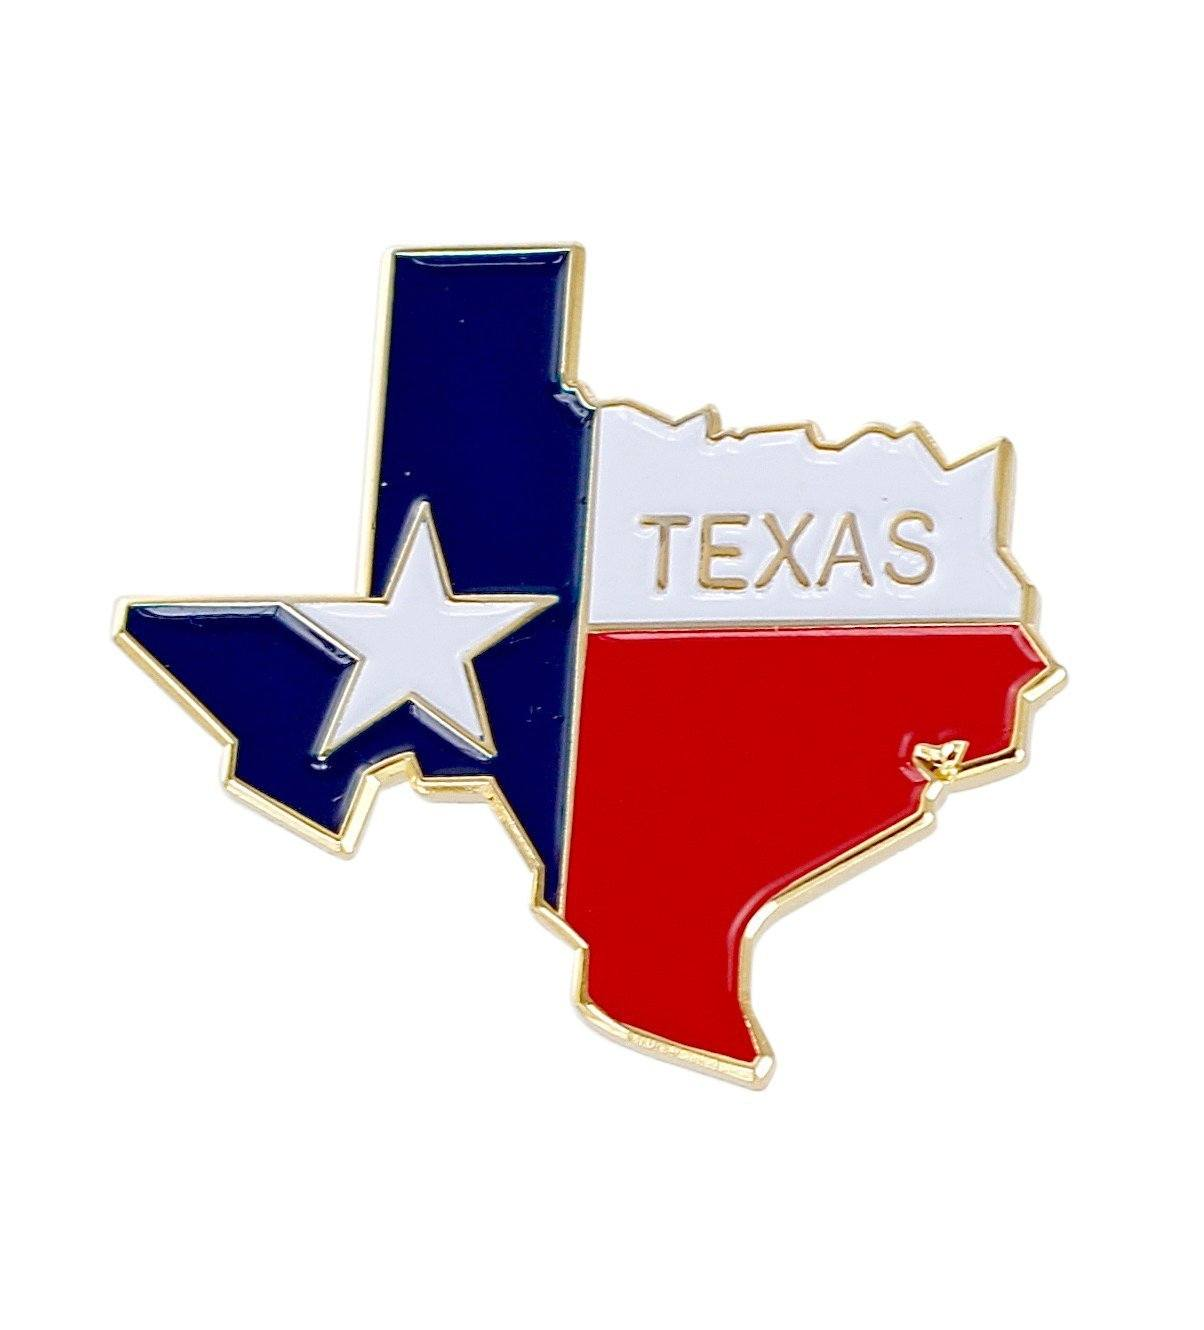 State Shape of Texas and Texas Flag Lapel Pin